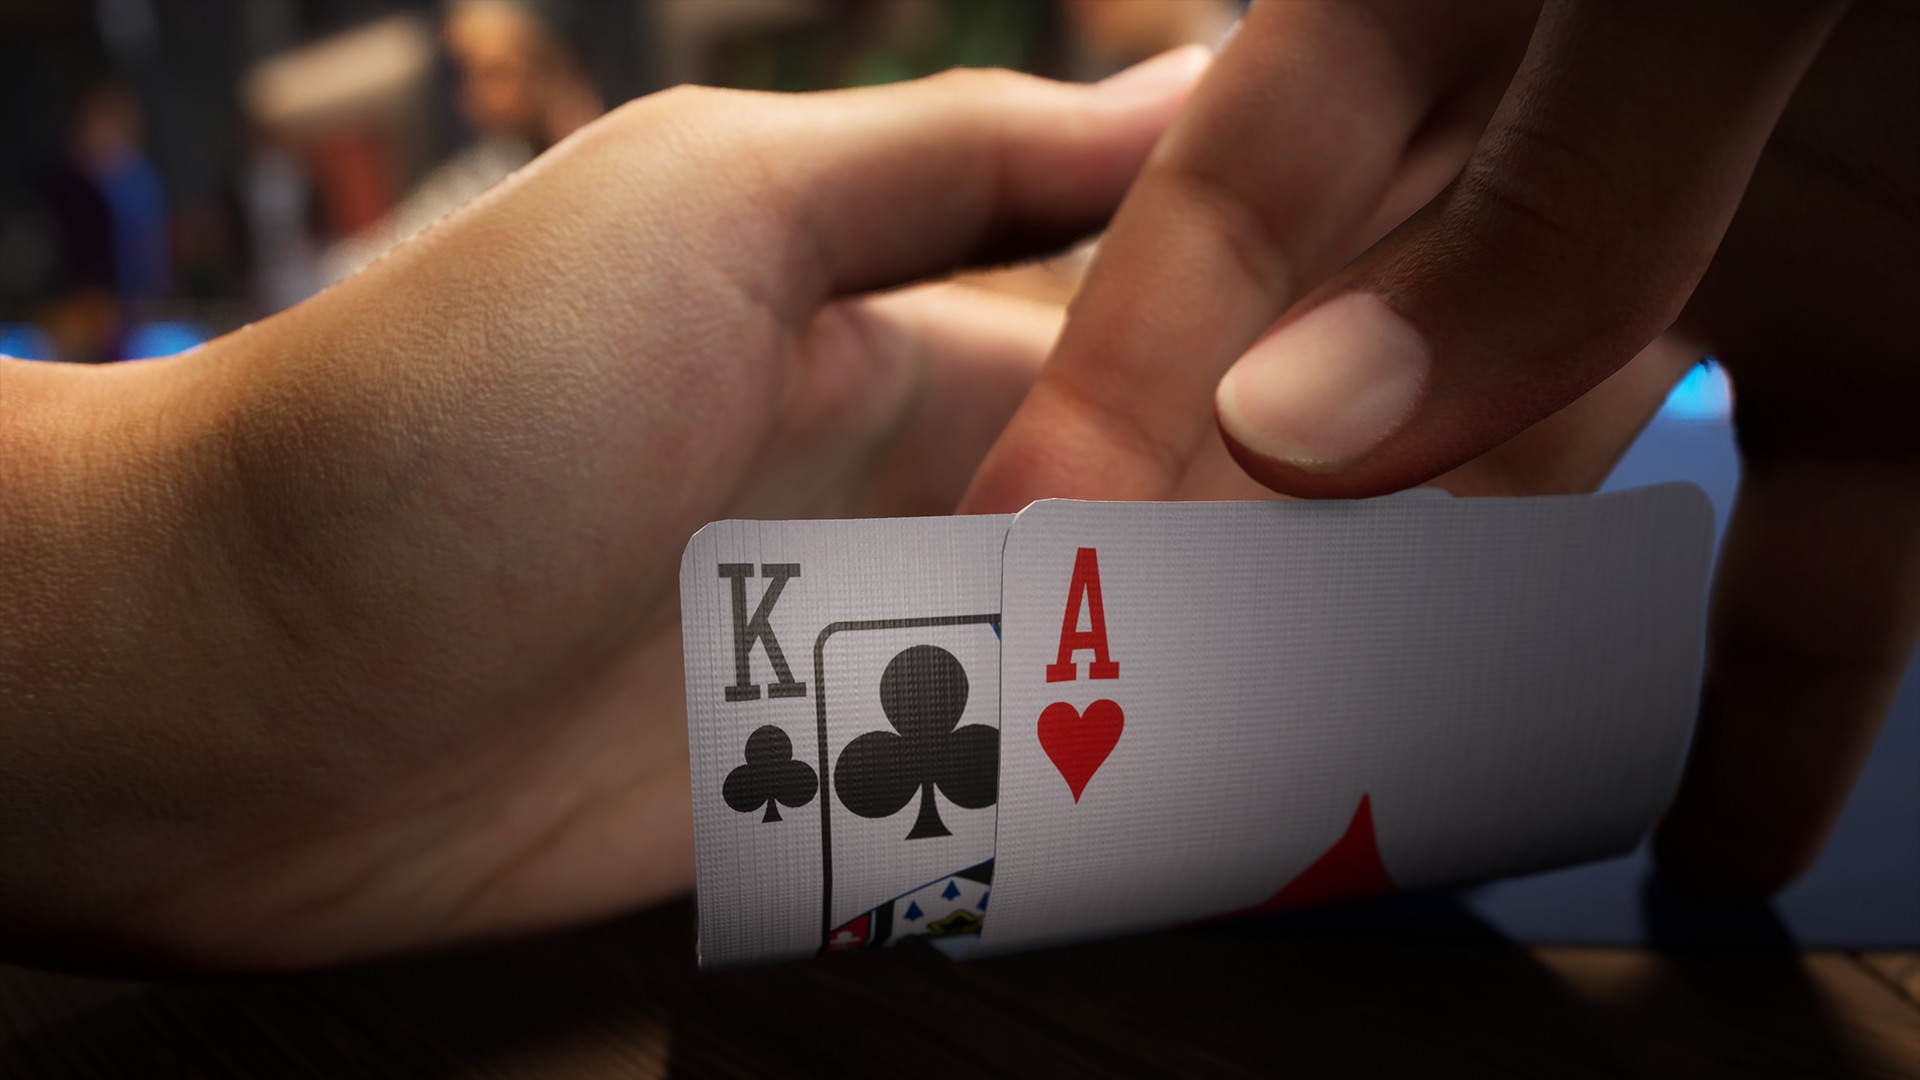 Legal guidelines Of Online Casino